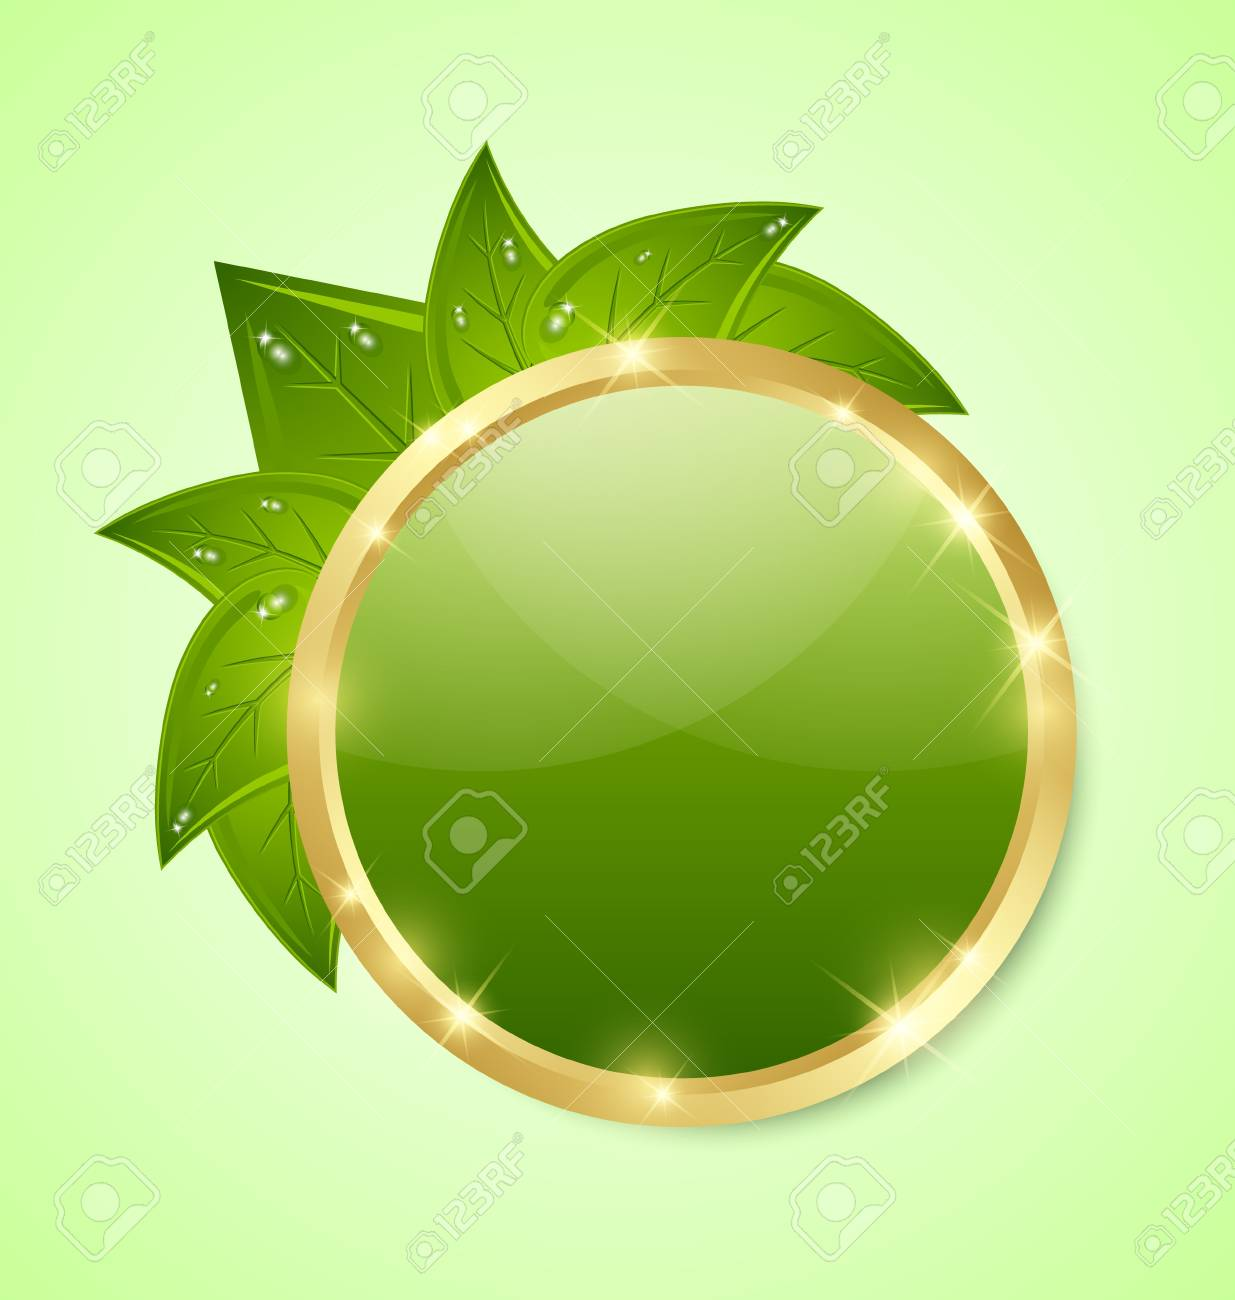 Golden and green glossy plaque with leaves isolated on background Stock Vector - 15998662